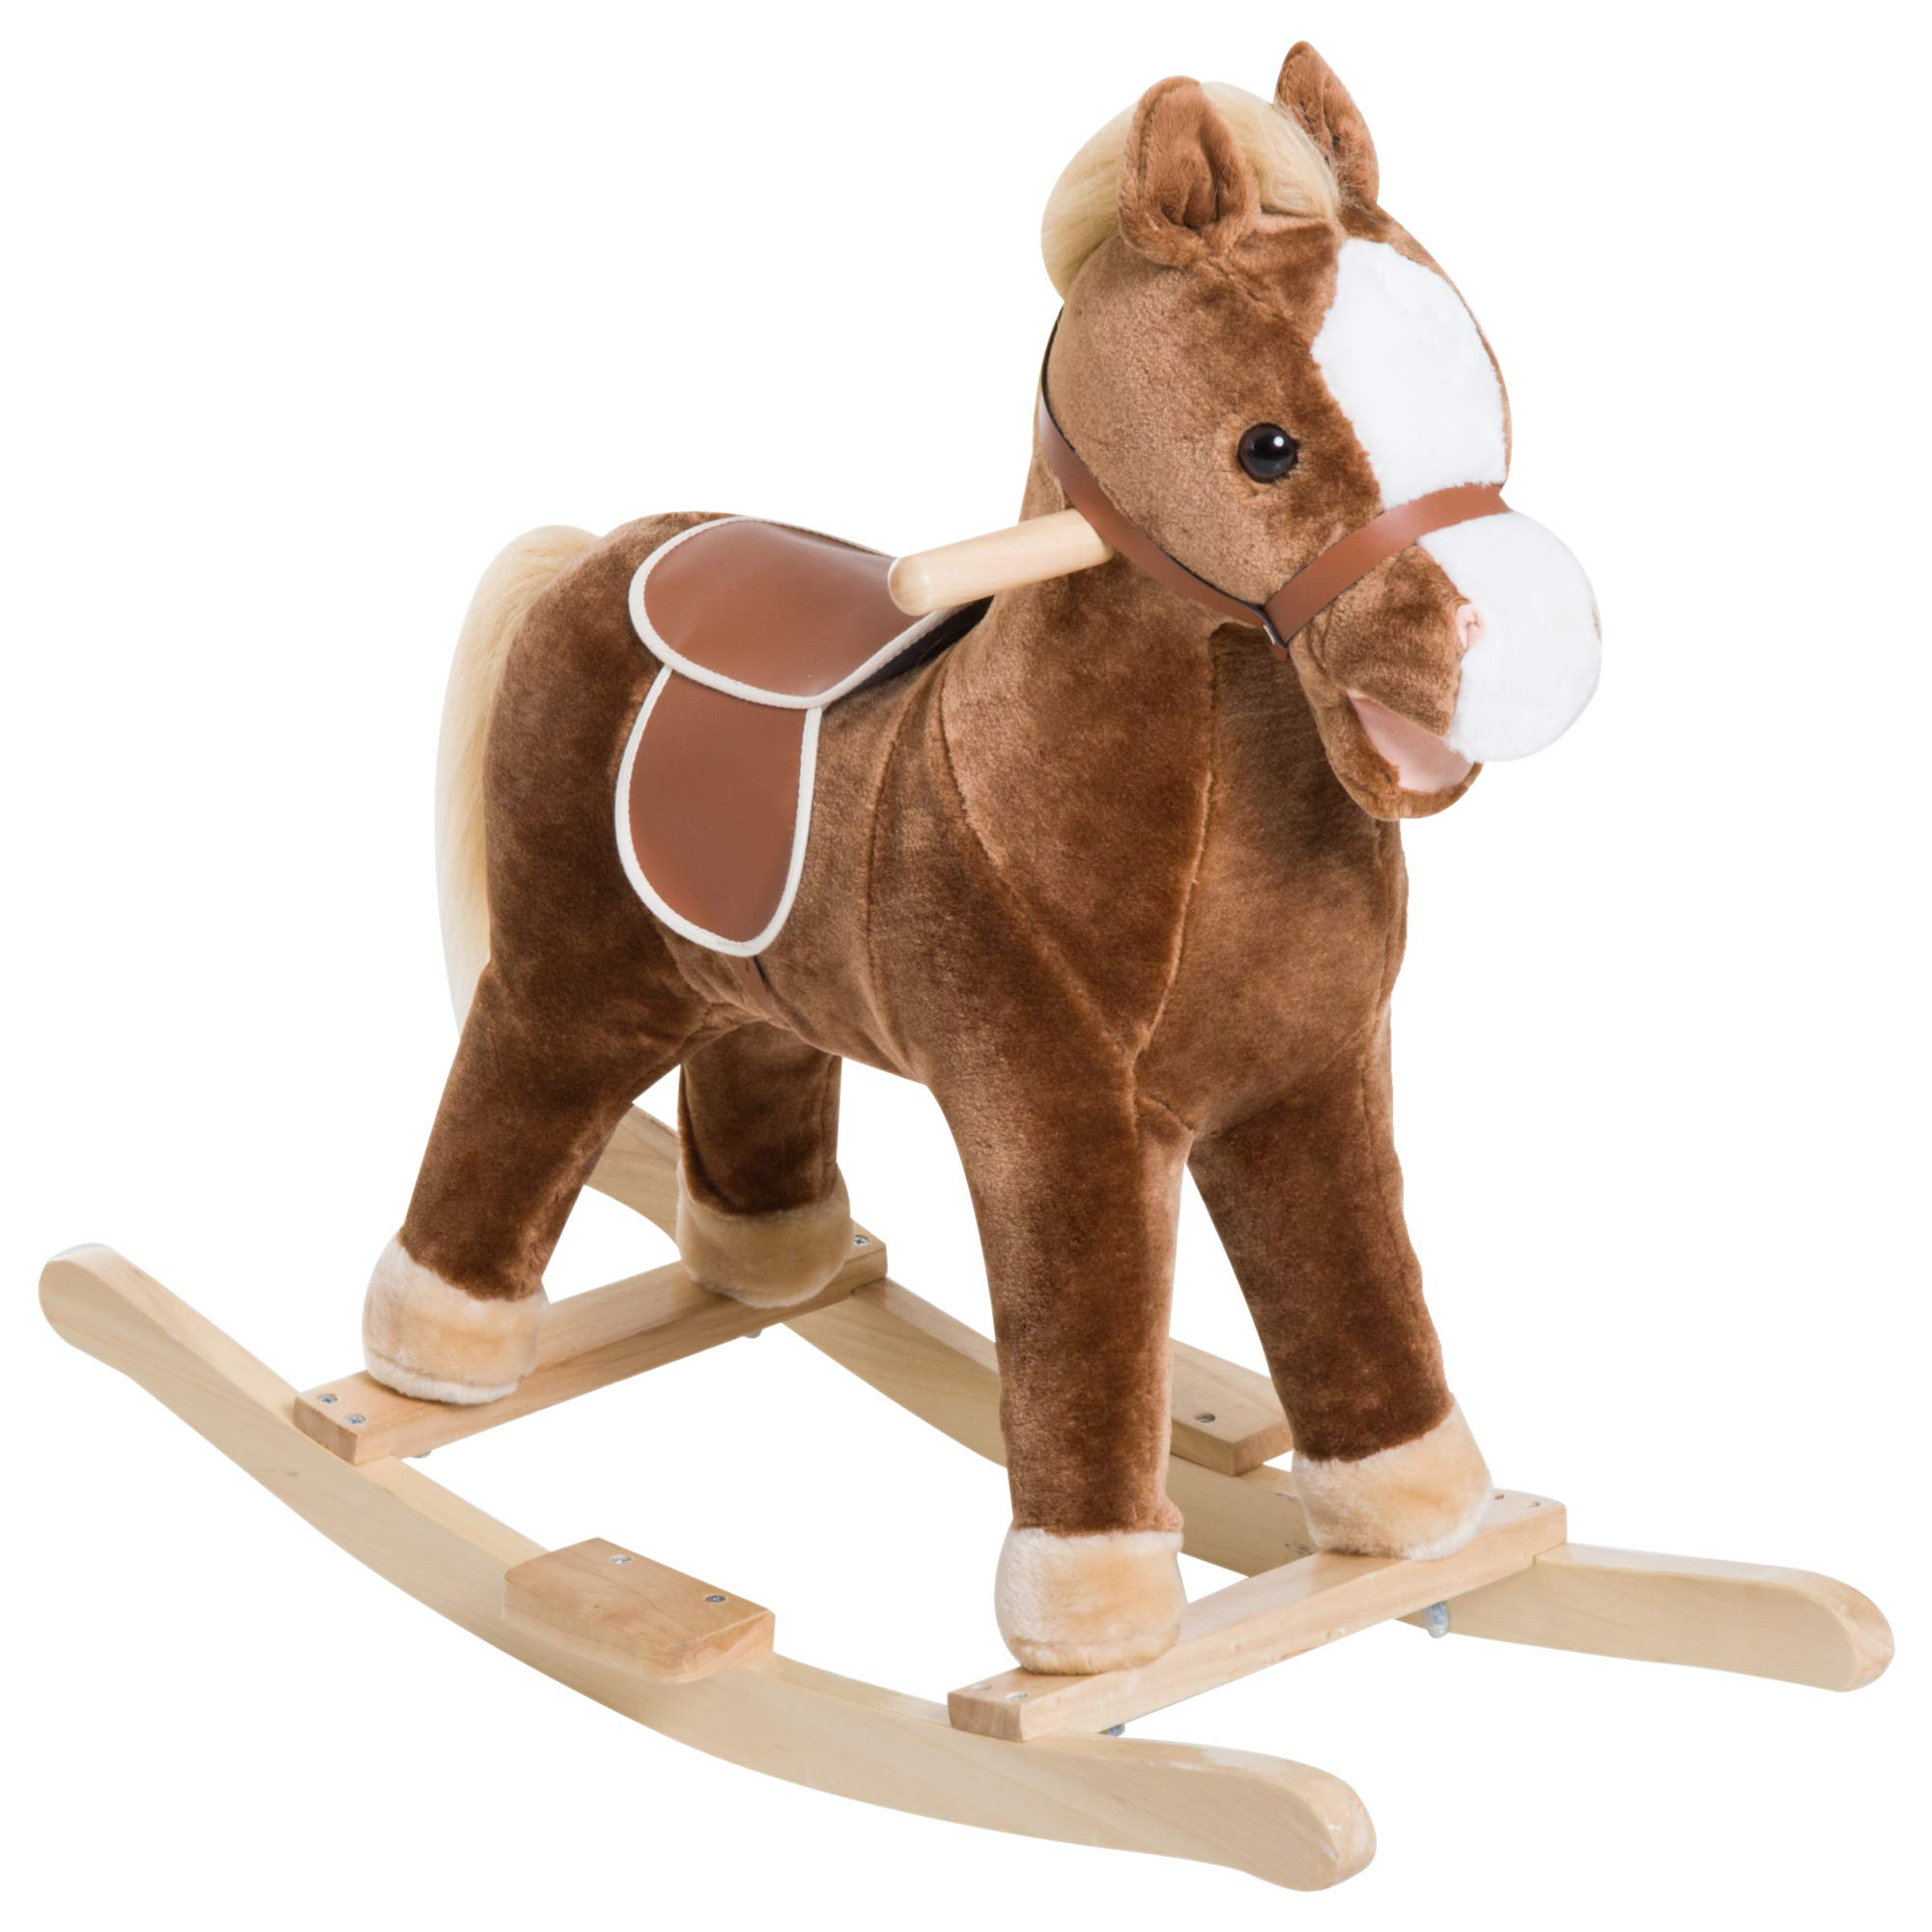 Qaba Kids Plush Toy Rocking Horse Ride on with Realistic Sounds - Brown